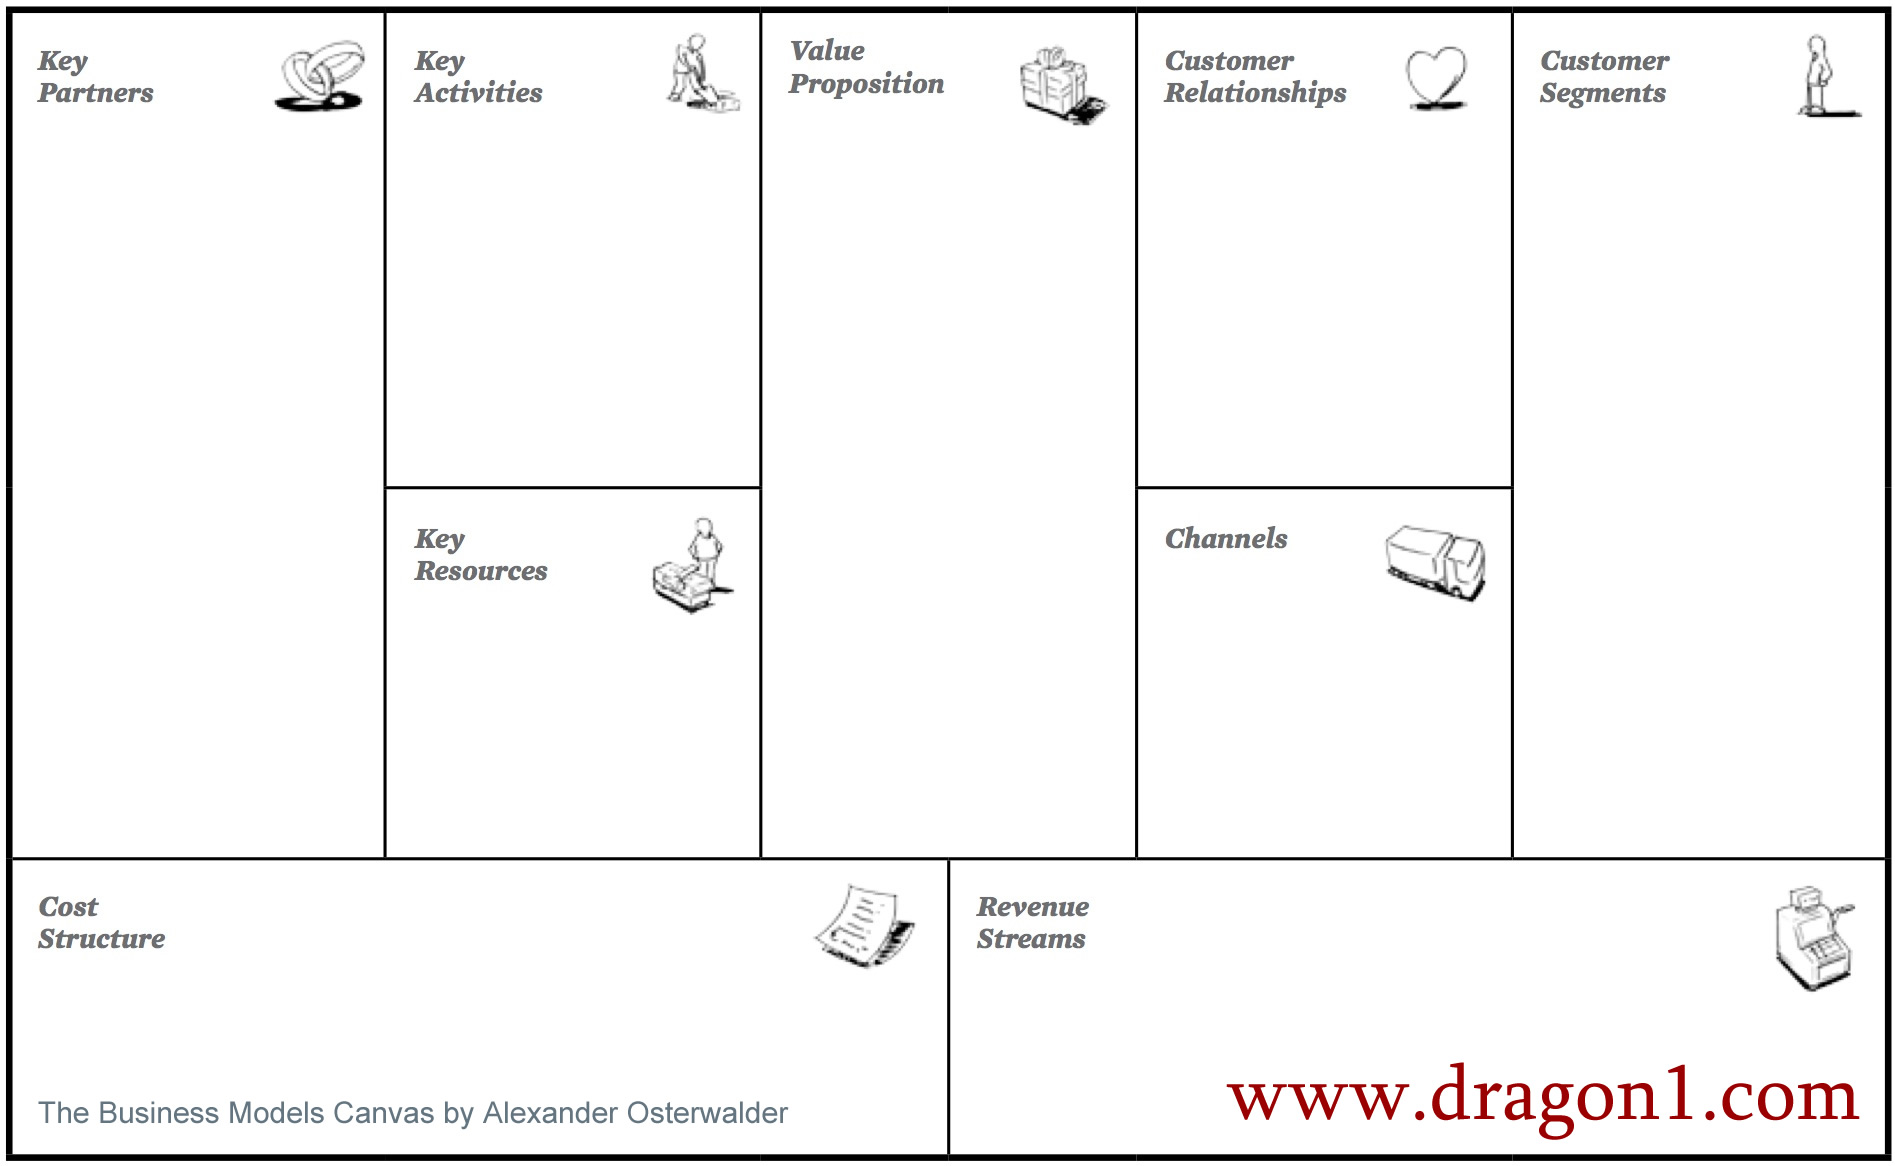 Business model canvas template dragon1 business model canvas template friedricerecipe Image collections